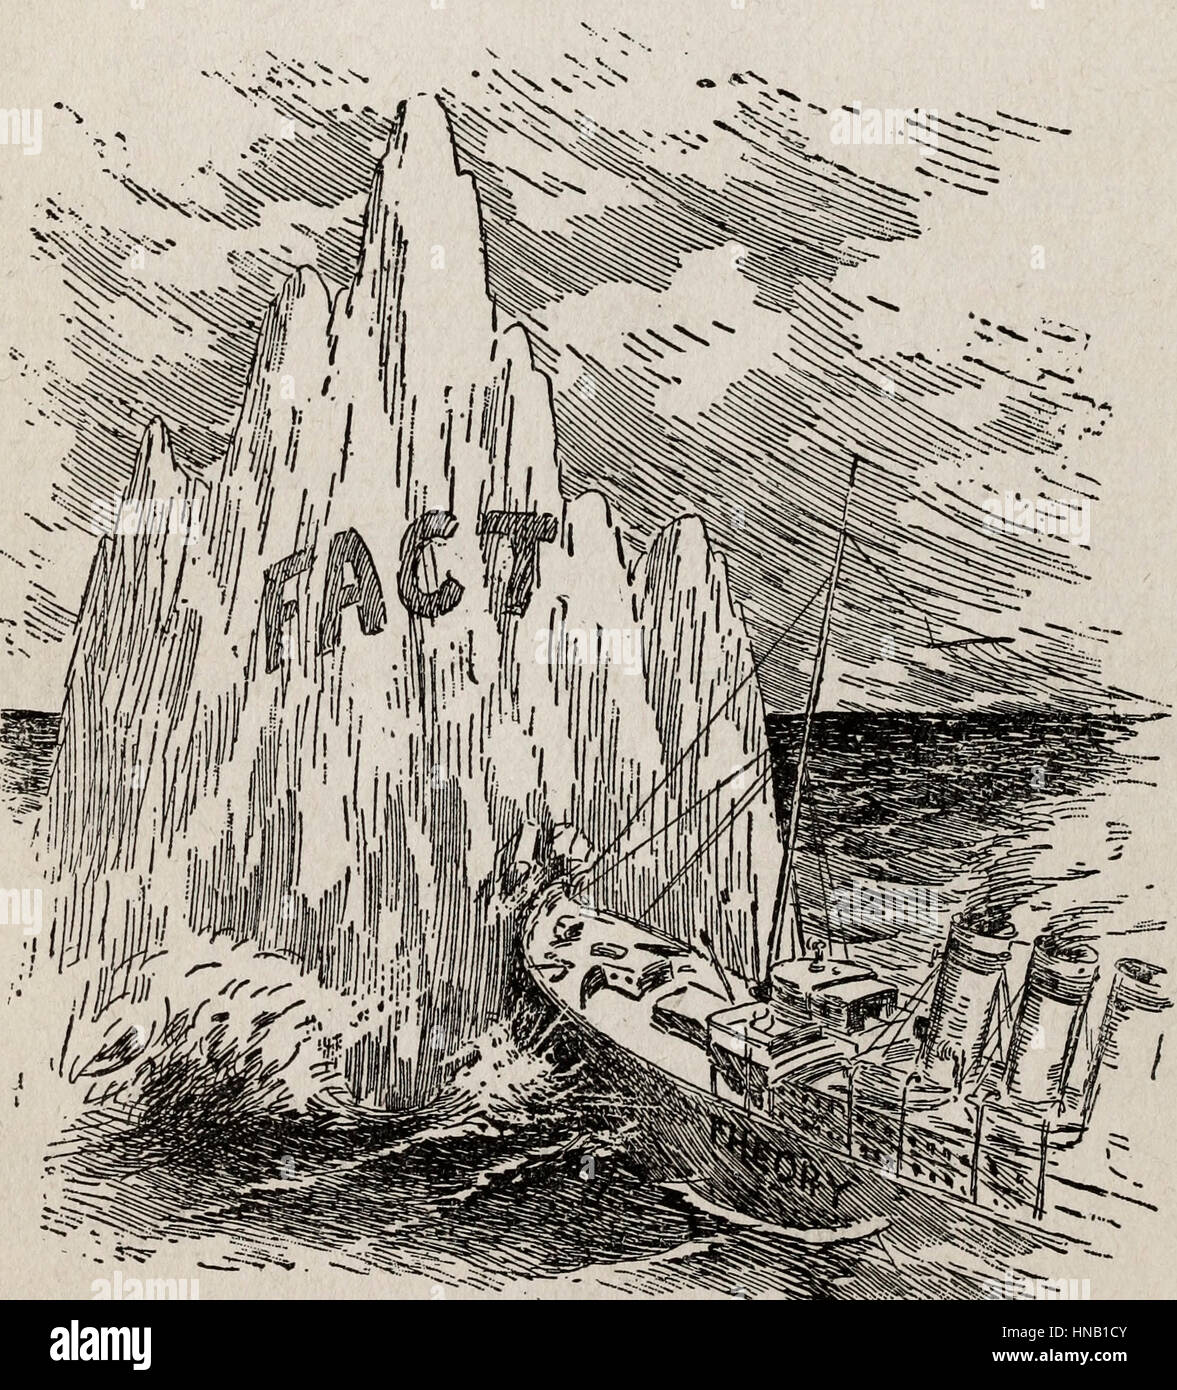 The Theory of the Titanic (unsinkable) hitting the Fact of the Iceberg - Stock Image